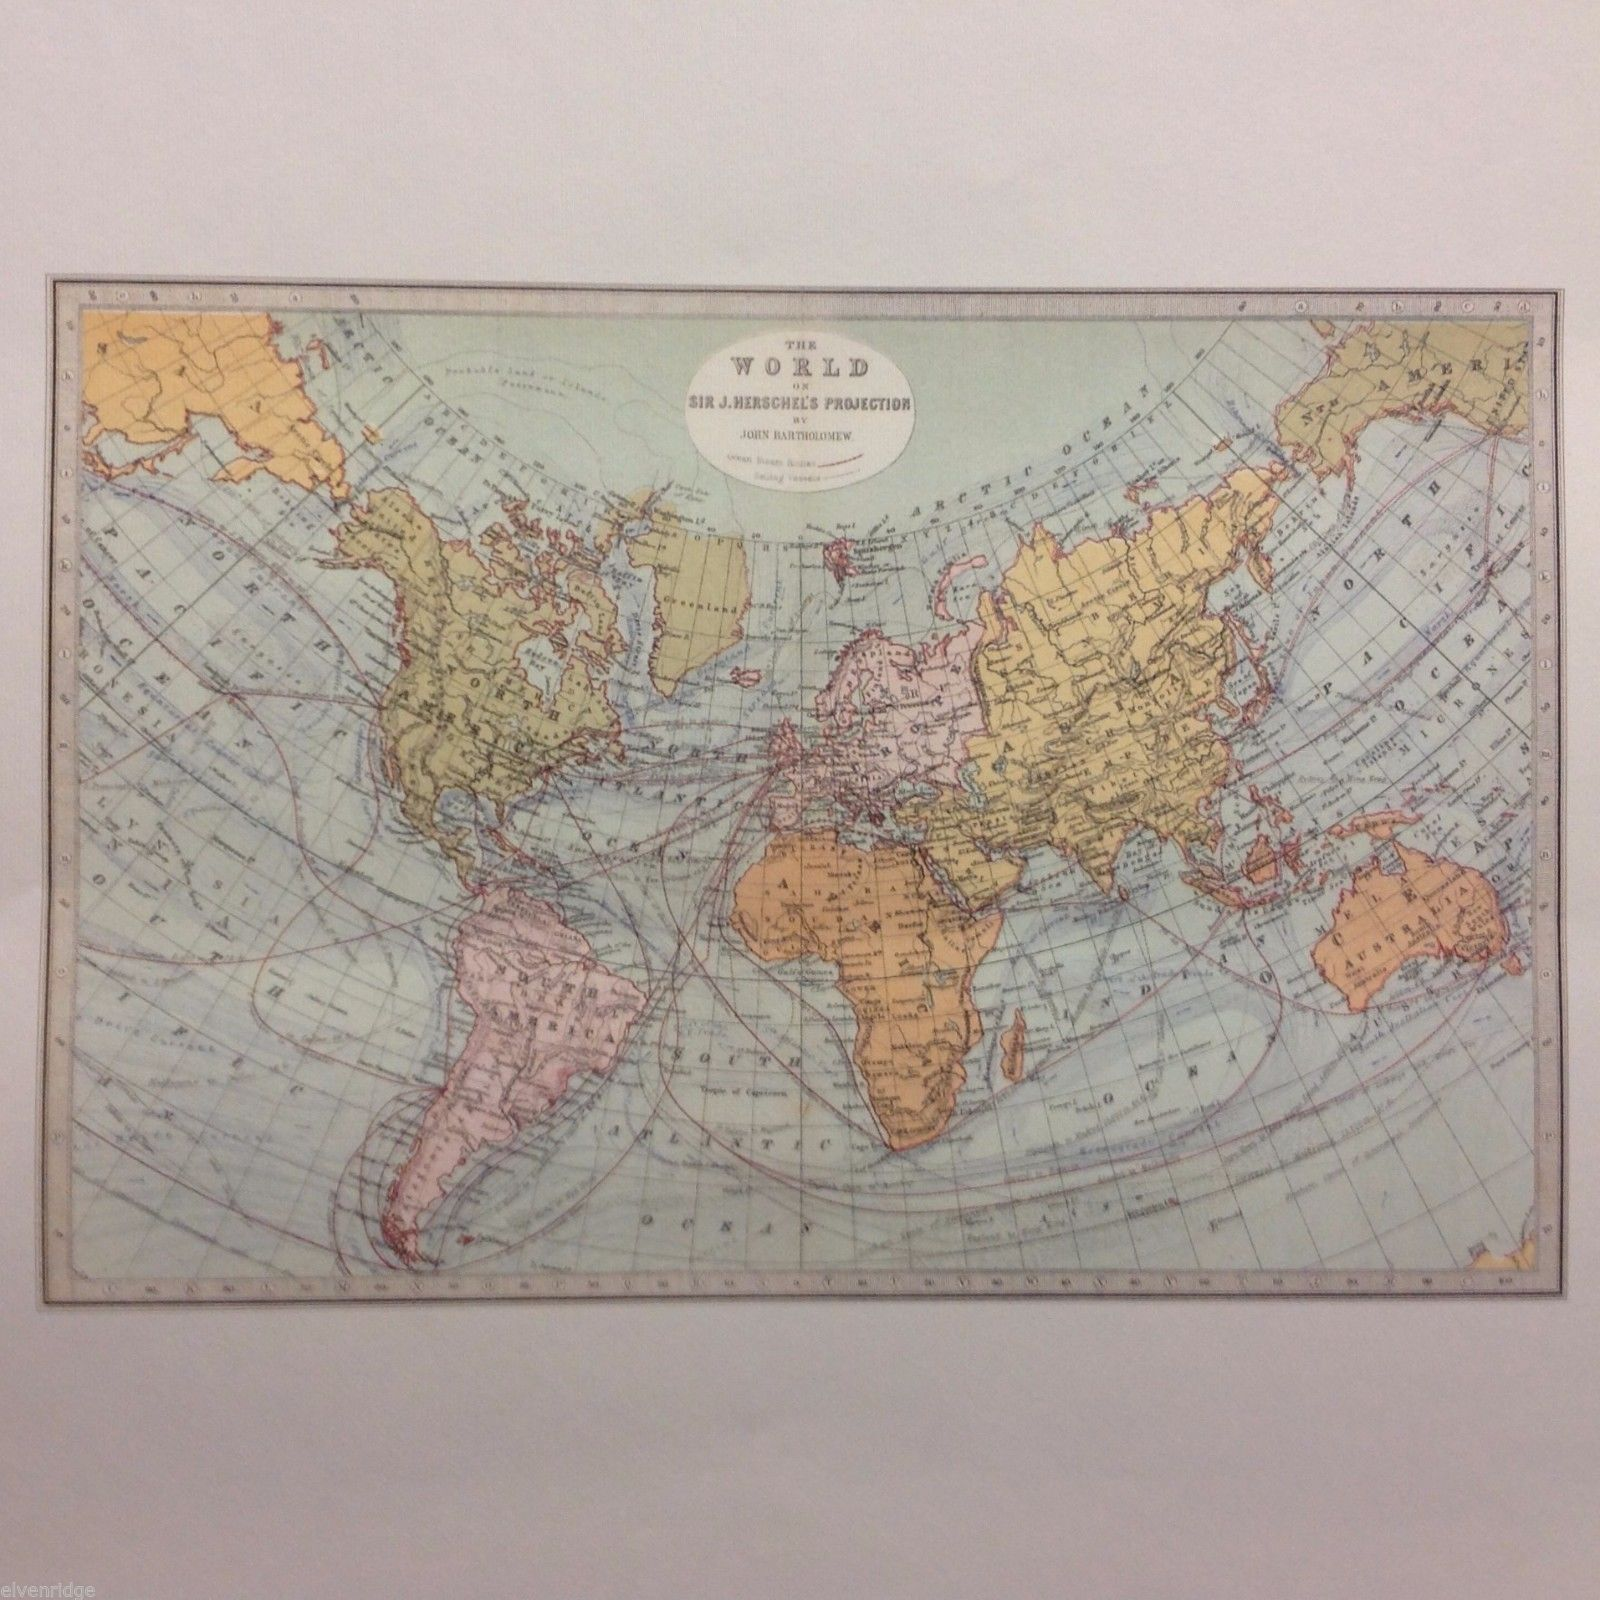 Vintage Color Reprint World Map Poster Sir Herschel's Projection